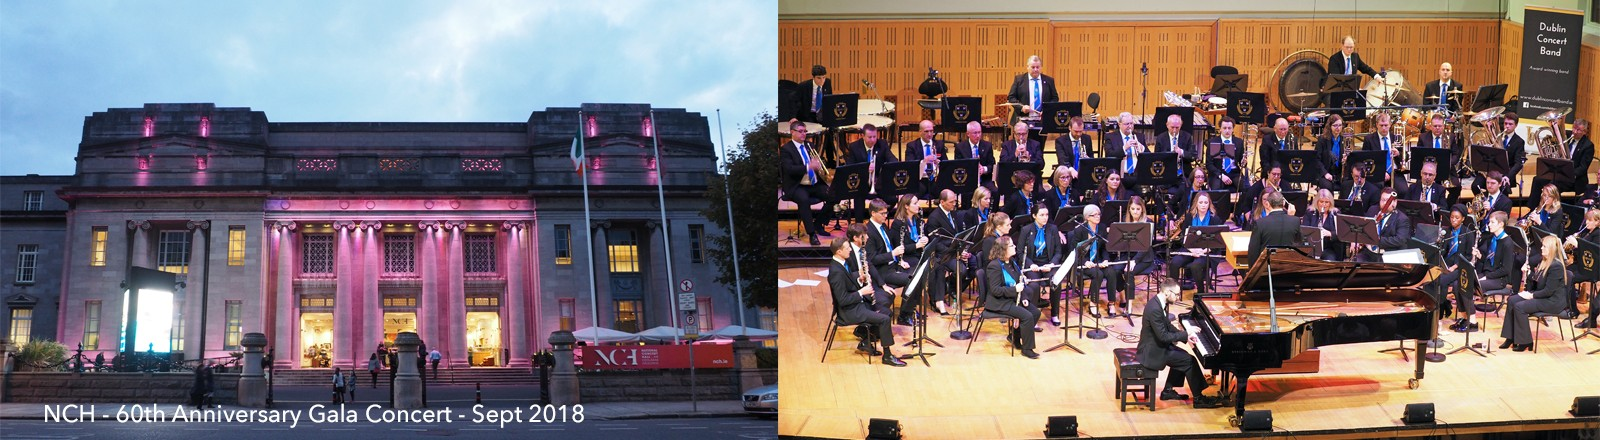 NCH - 60th Anniversary Gala Concert Sept 2018